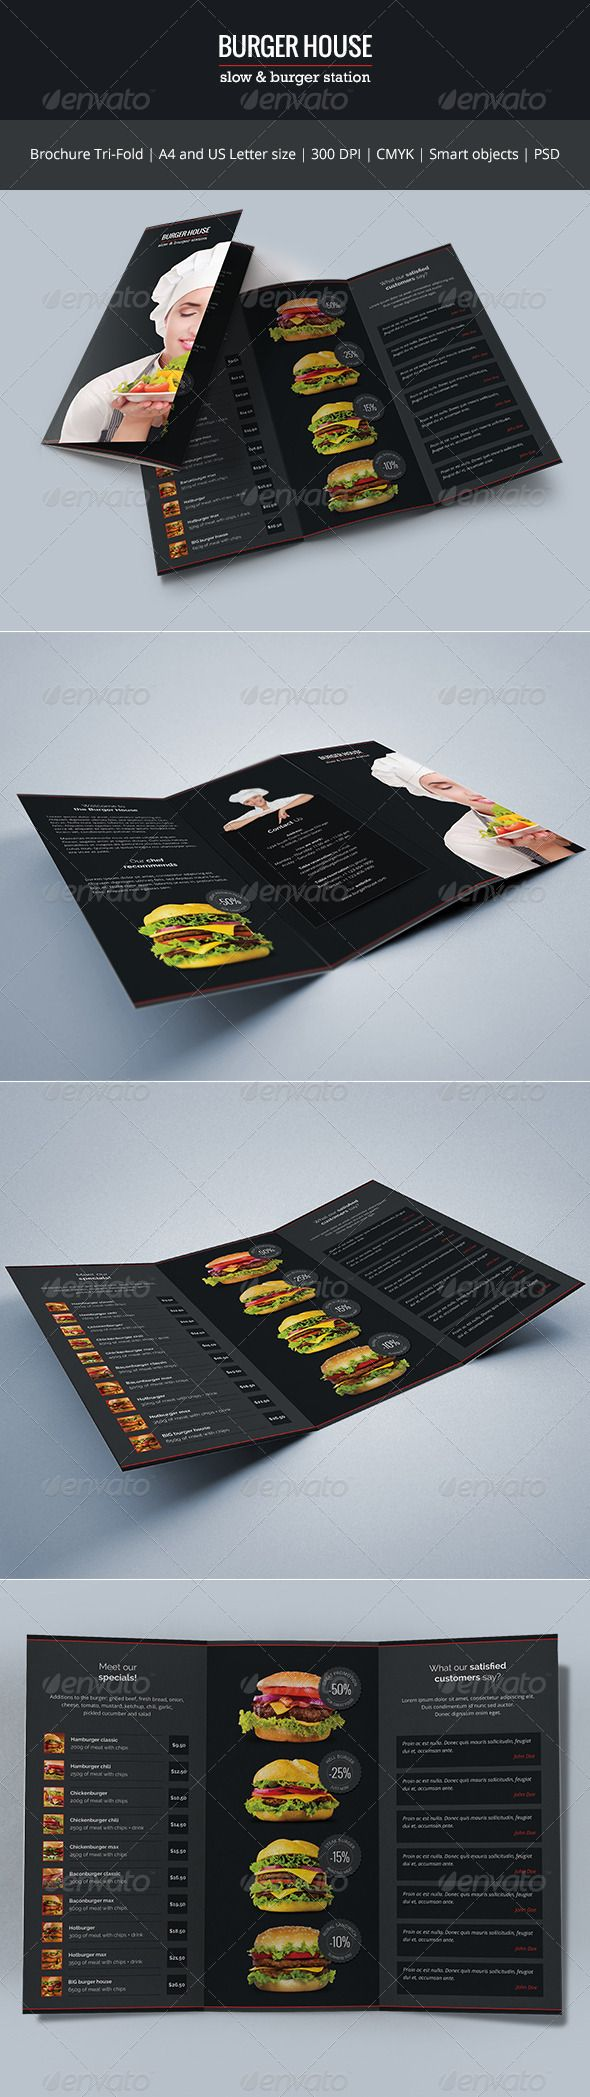 burger house brochure tri fold tri fold brochures and burgers